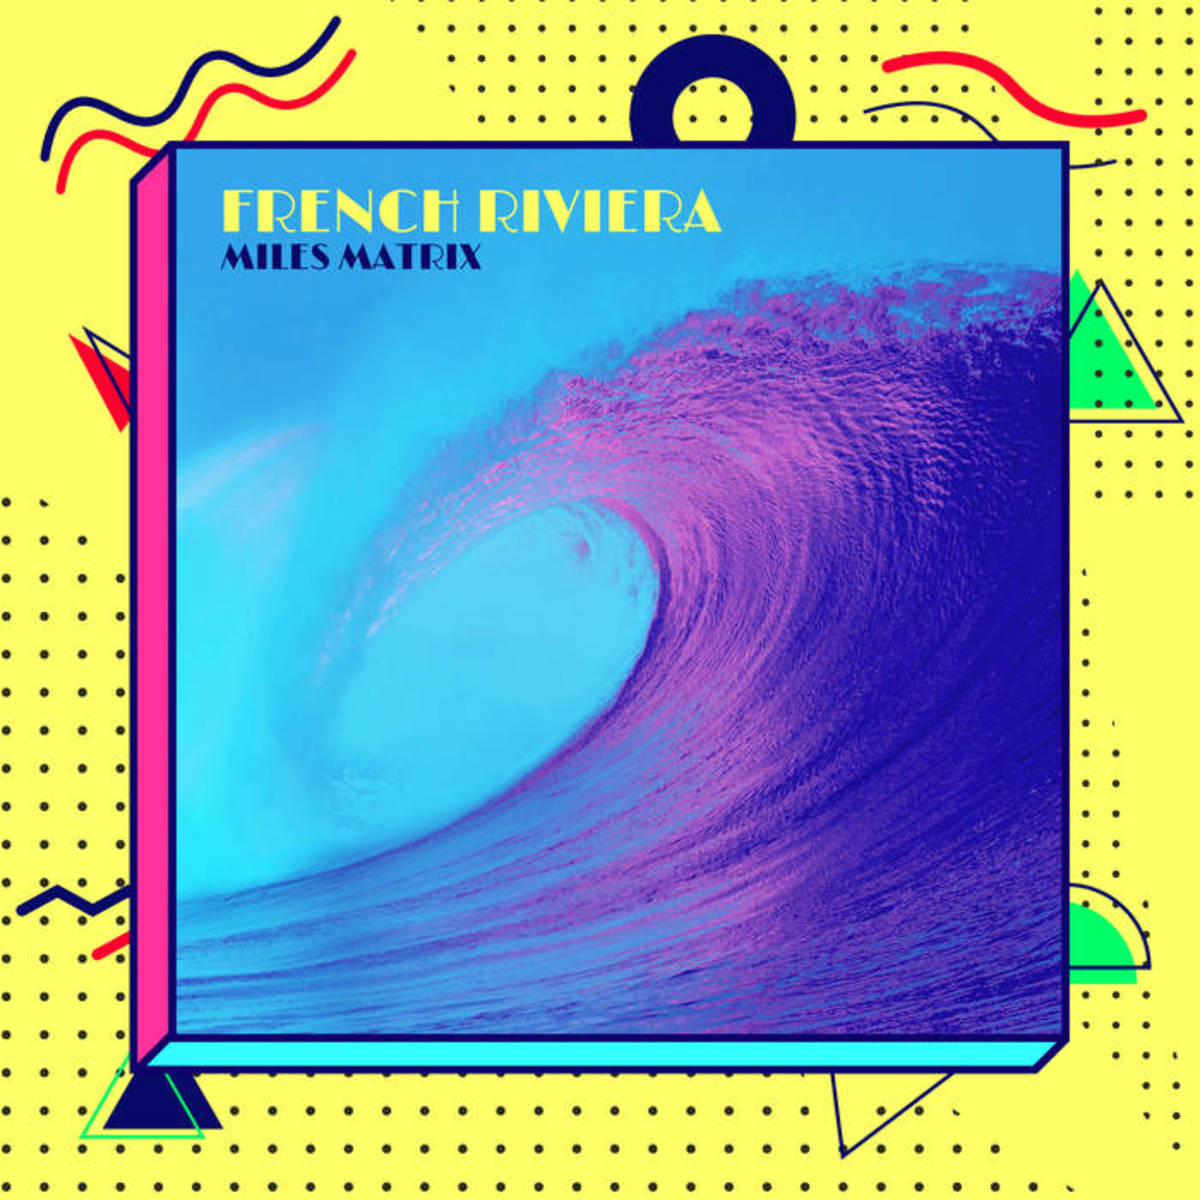 """Synth Album Review: """"French Riviera"""" by Miles Matrix"""